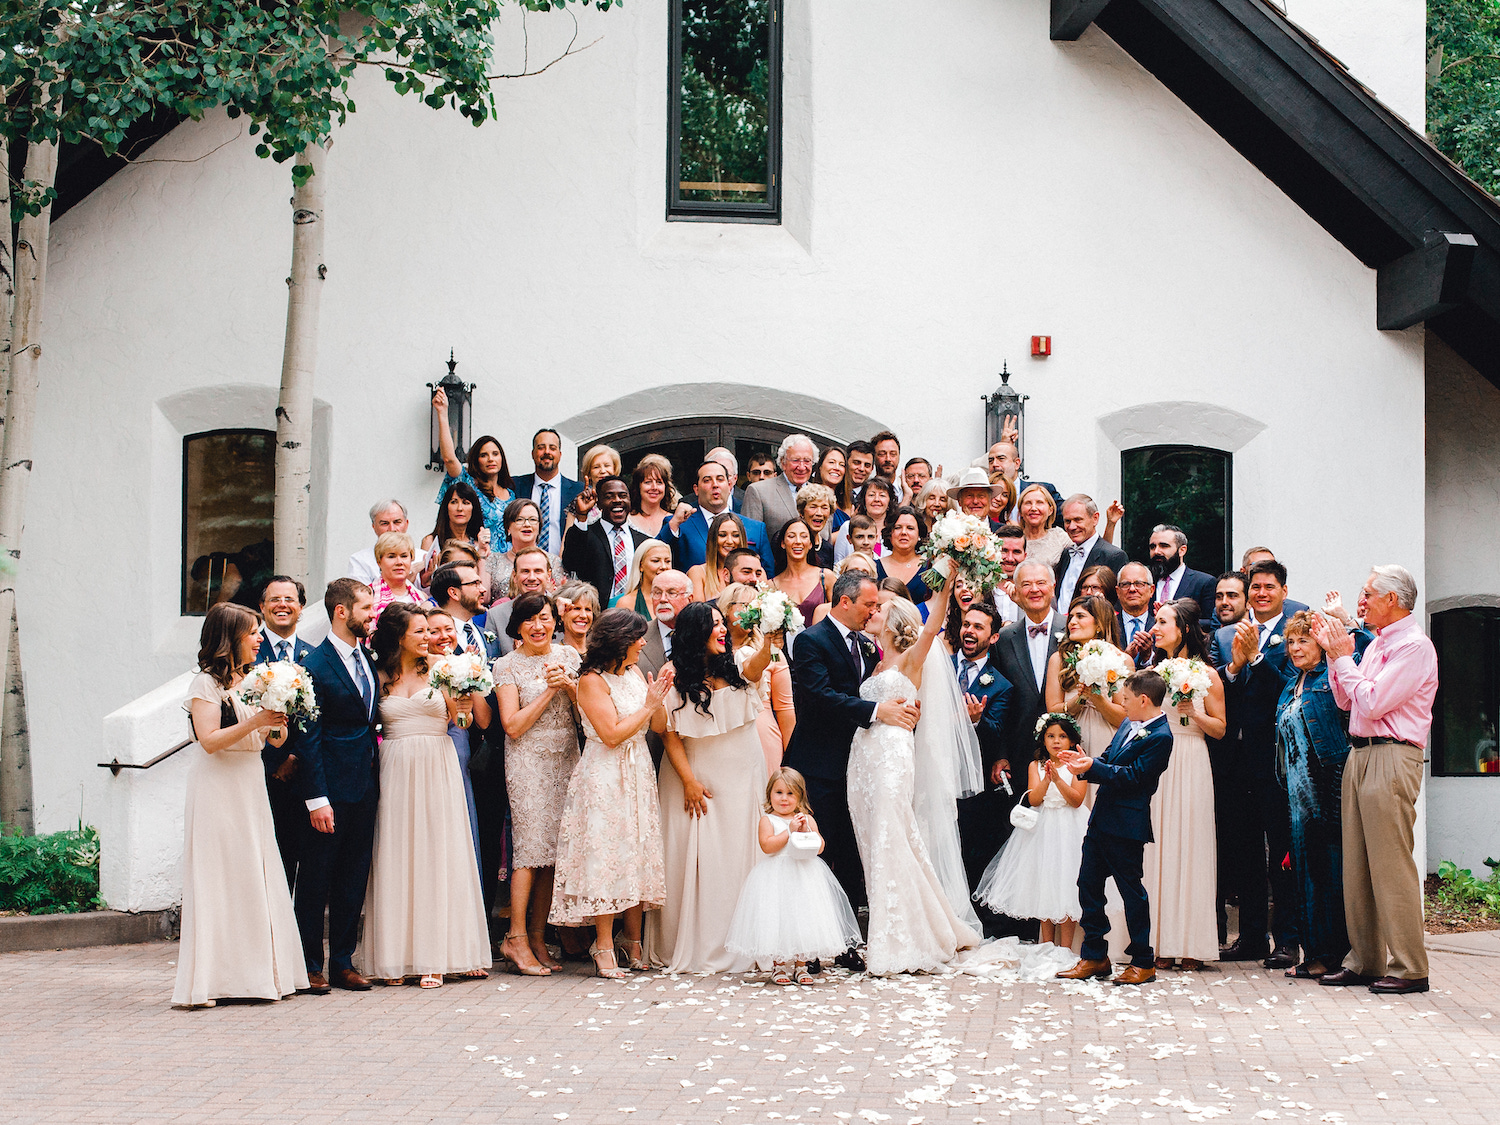 Group photo with all guests on the steps of Vail Interfaith Chapel after wedding ceremony